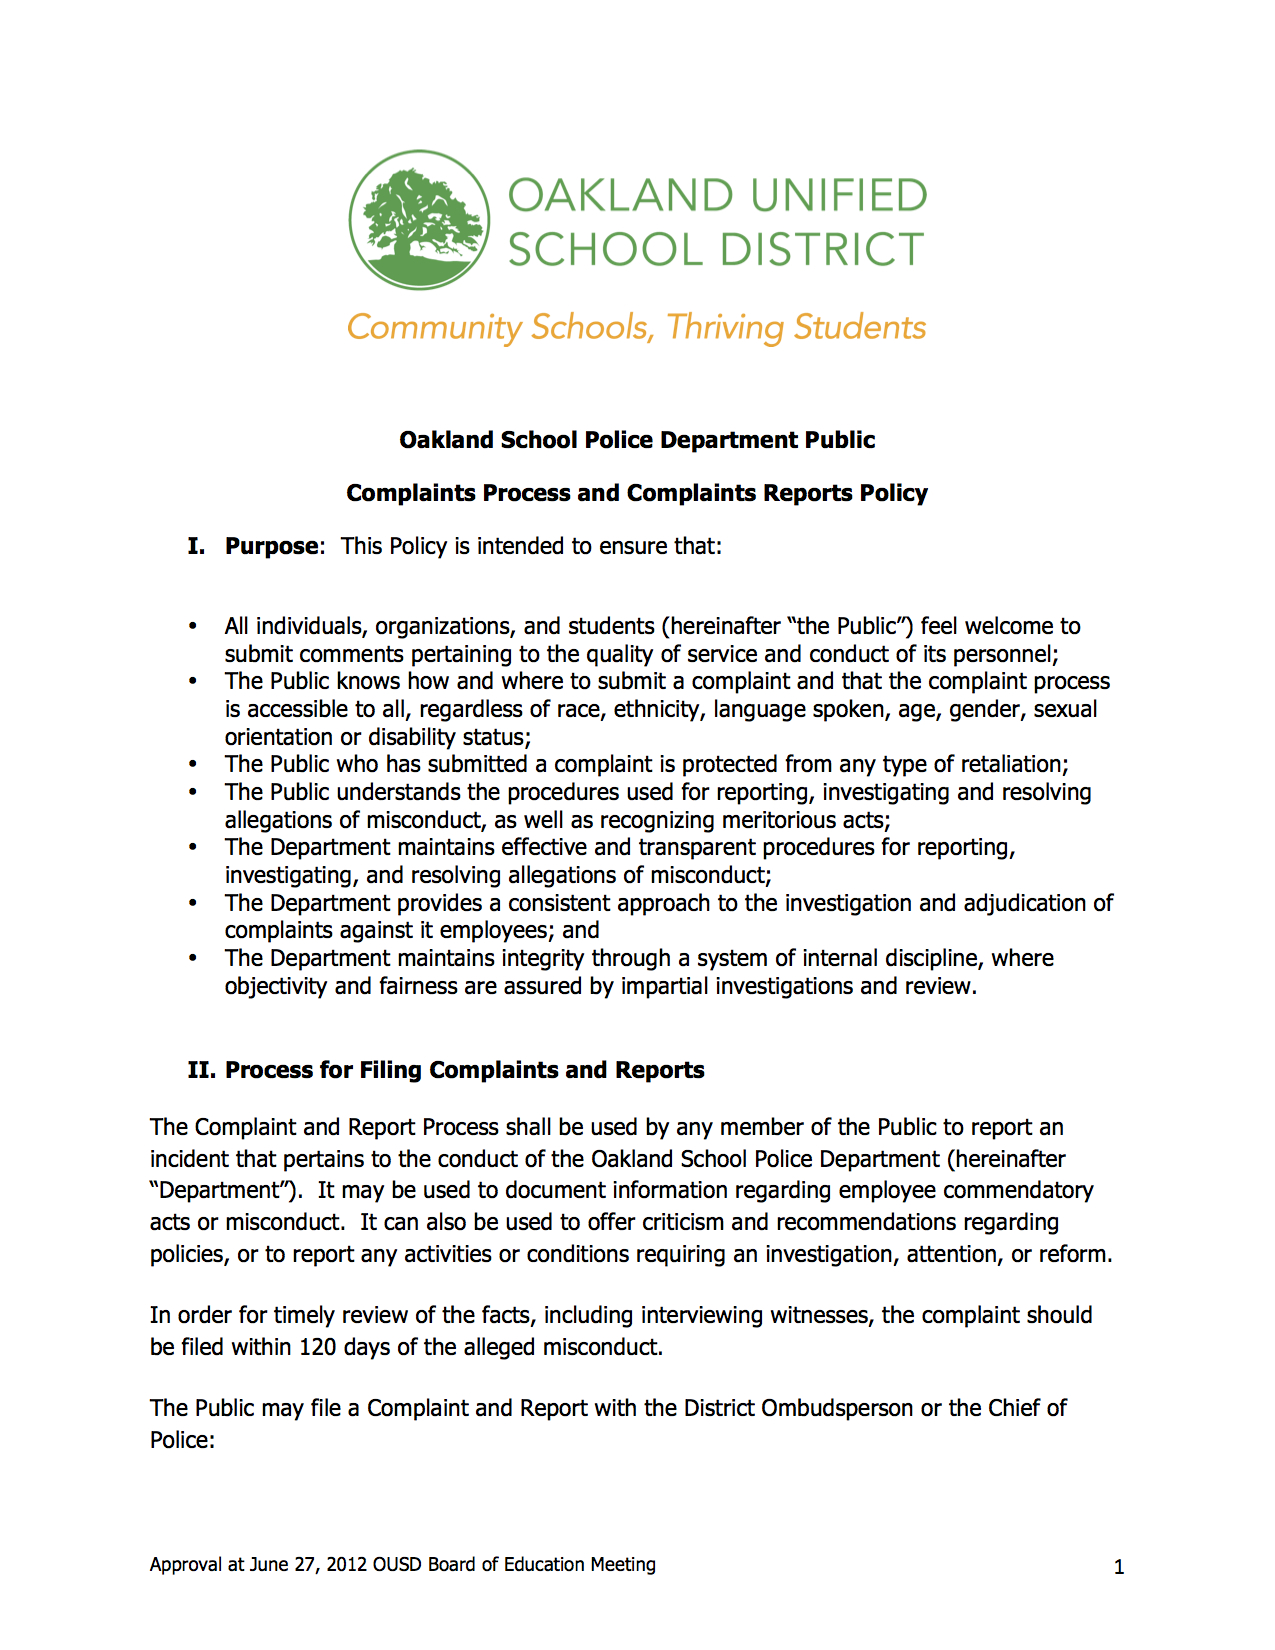 Complaints To Education Department >> Oakland School Police Complaints Process Black Organizing Project